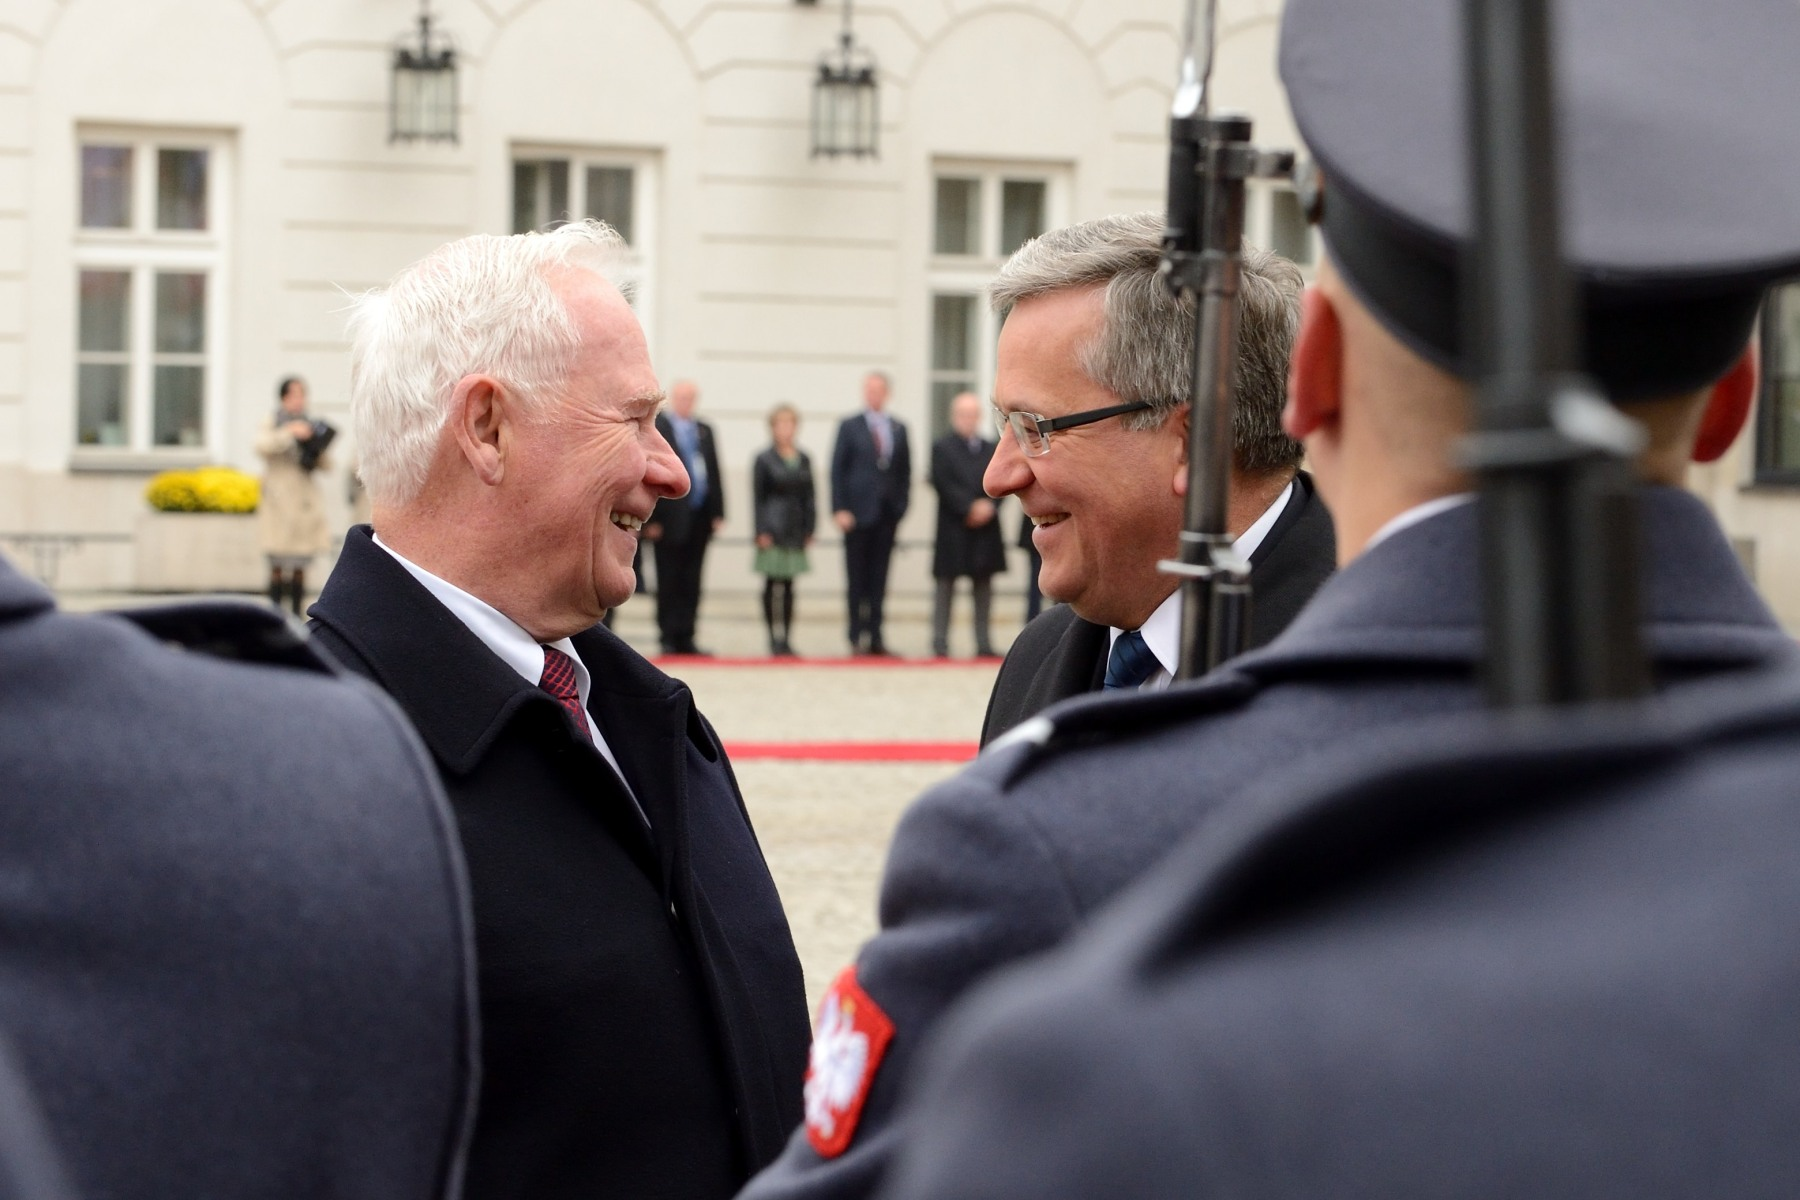 His Excellency the Right Honourable David Johnston, Governor General of Canada, was officially welcomed by the President of Poland Bronislaw Komorowski at the Presidential Palace, in Warsaw, on October 23, 2014